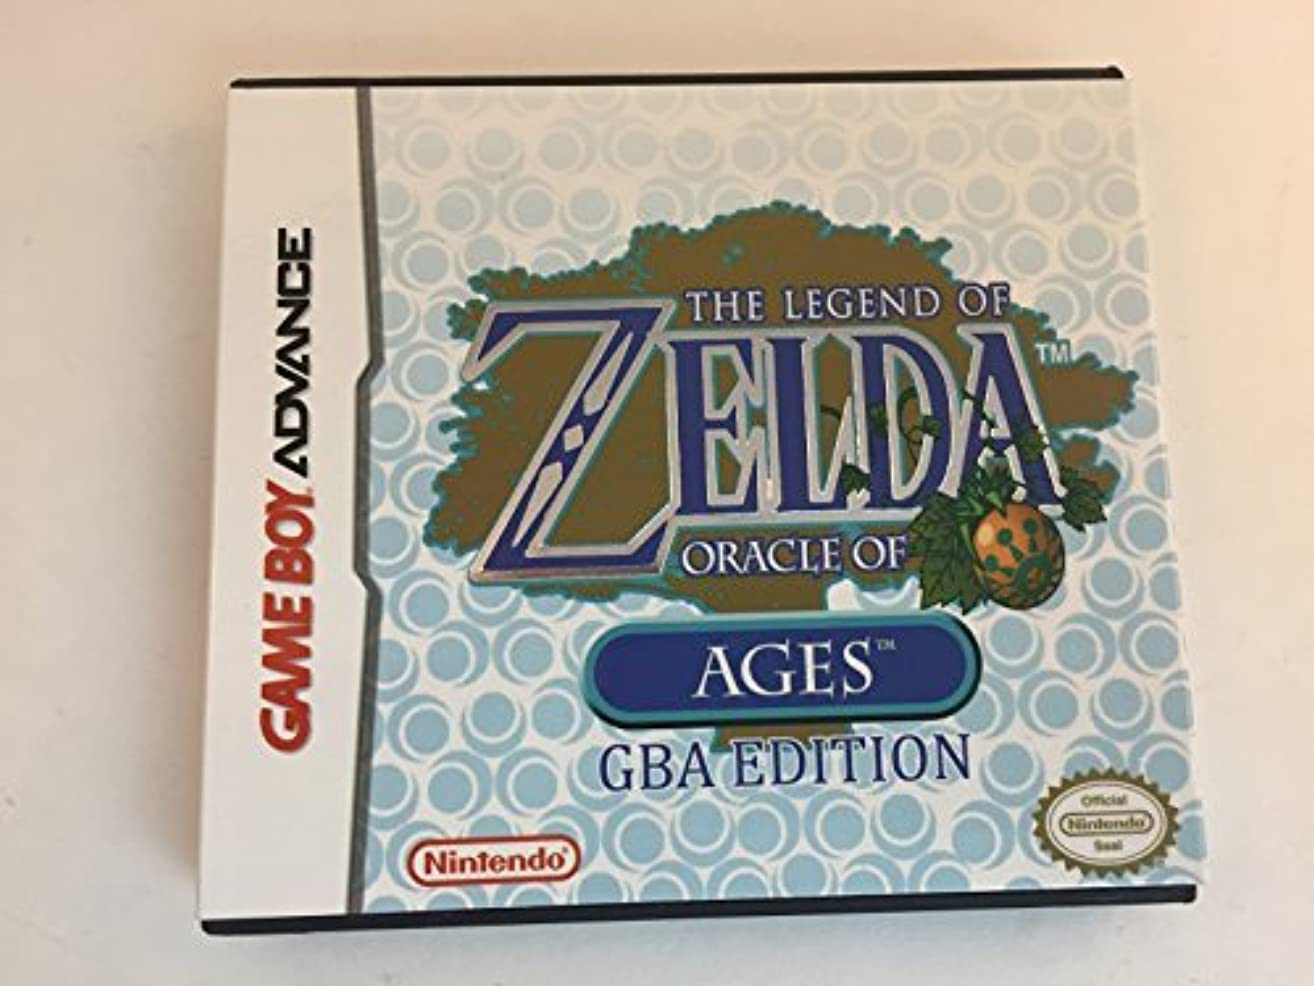 Zelda, Oracle of Ages - Nintendo GBA - GameBoy Advance - Fan Translation